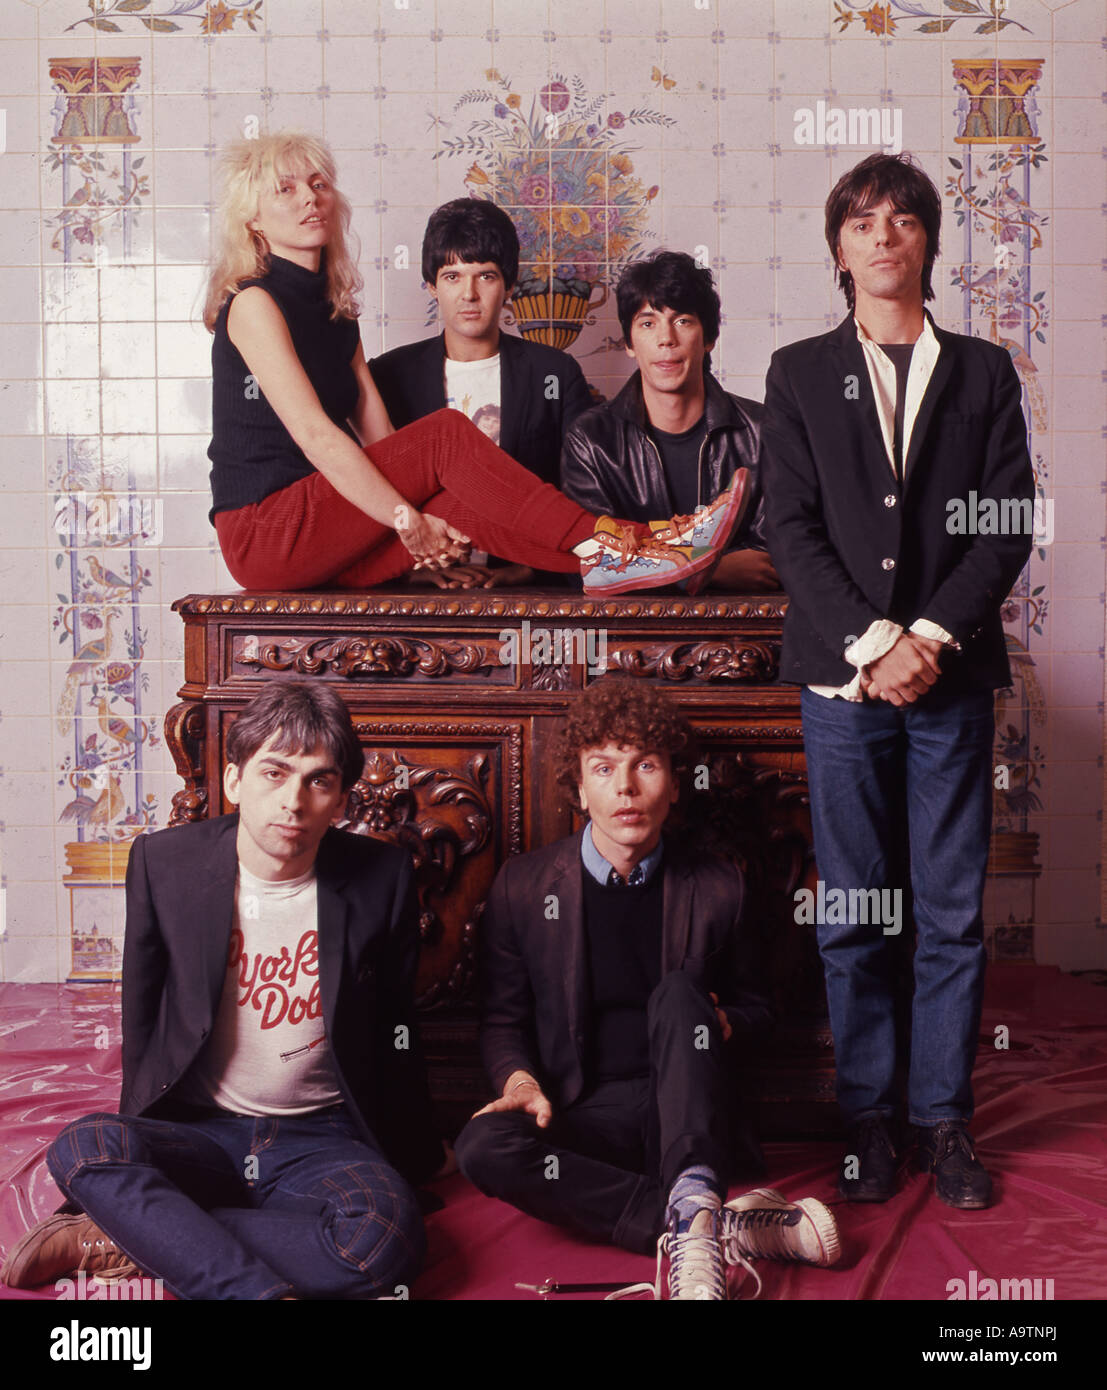 blondie us group with debbie harry about 1977